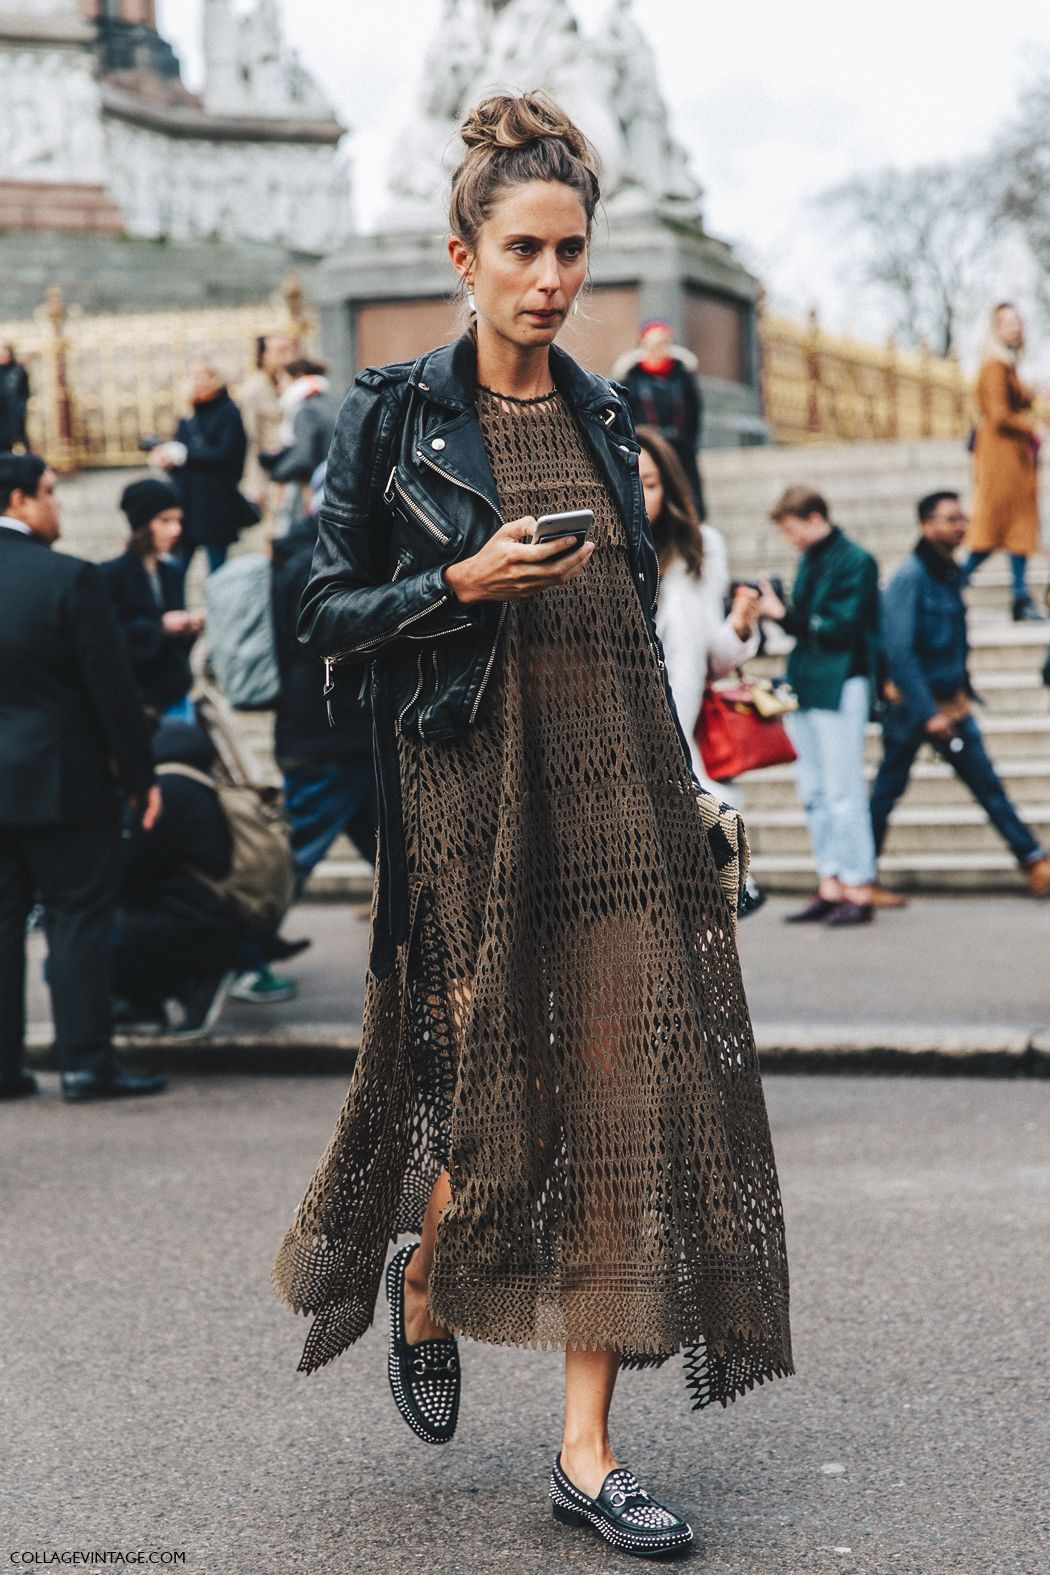 Street Style from Fashion Week NYFW and LFW | Collage Vintage